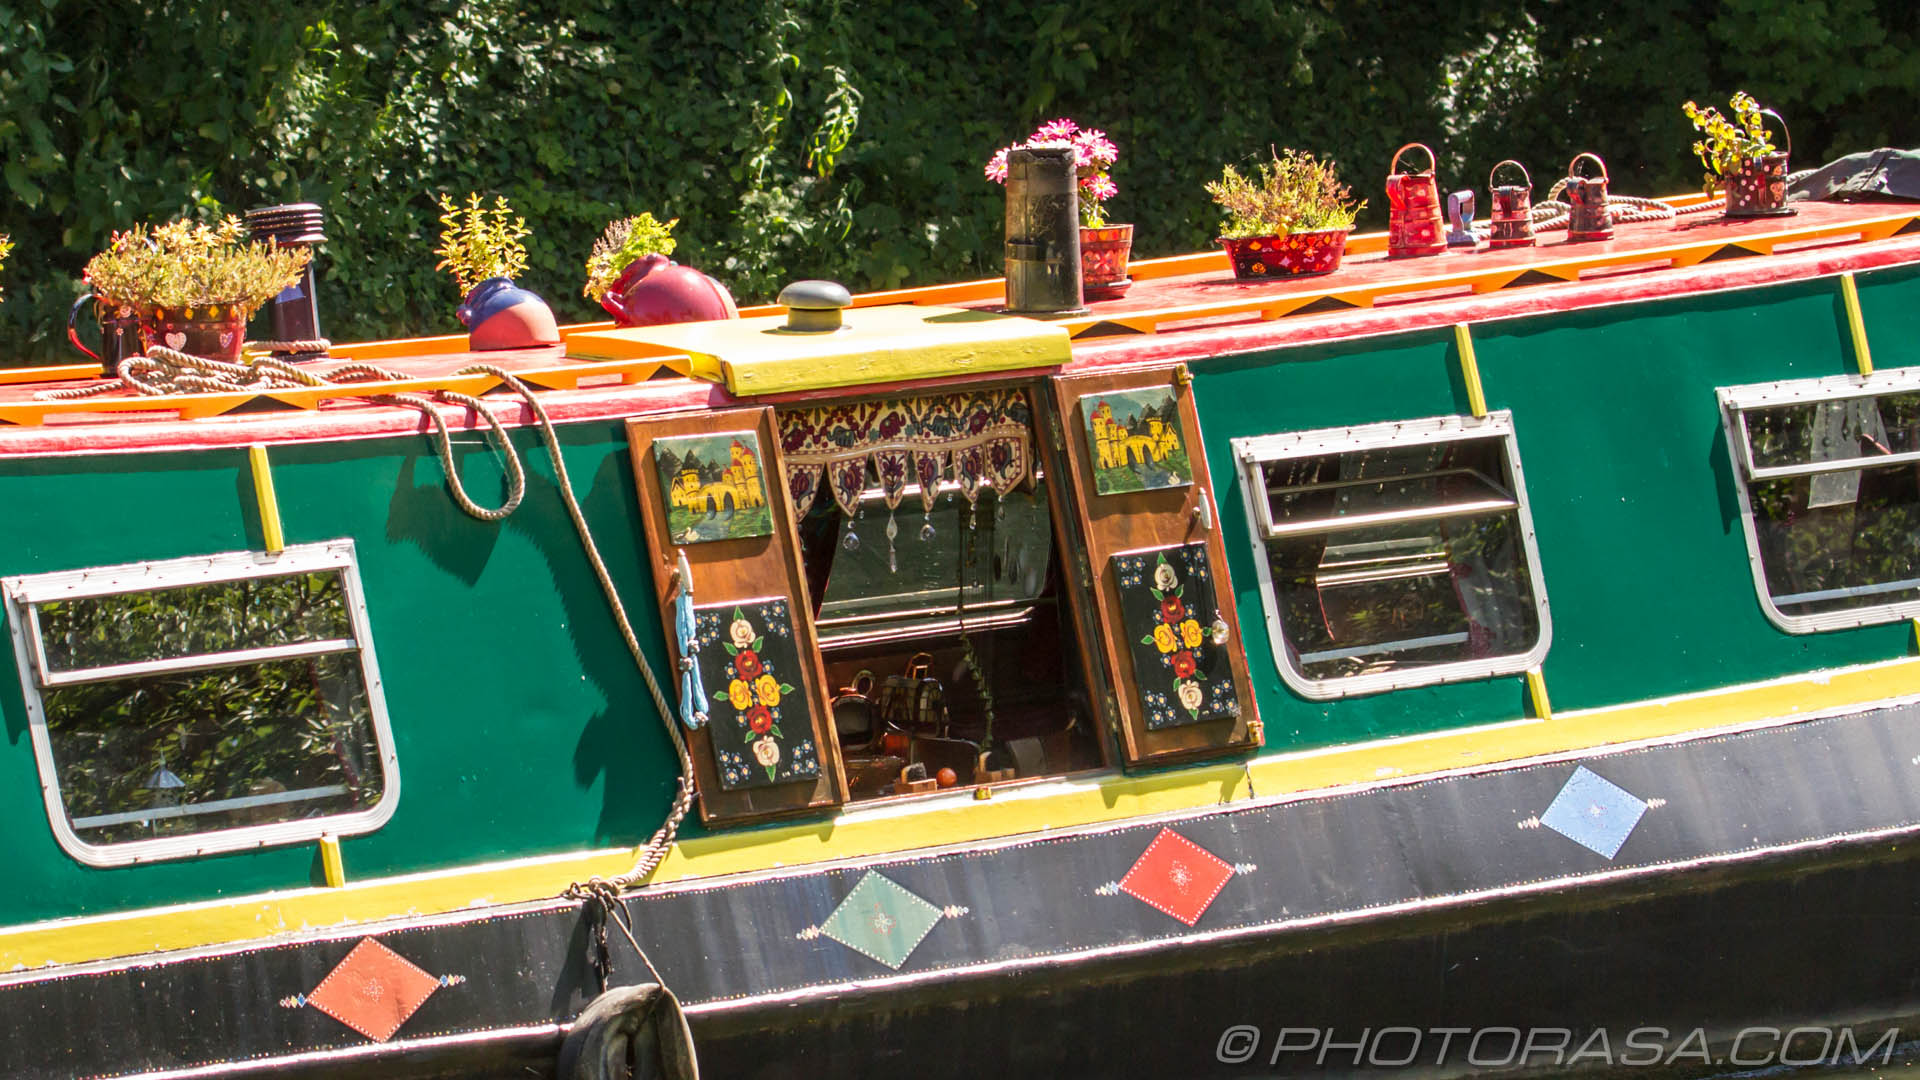 https://photorasa.com/maidstone/colourful-river-barge/